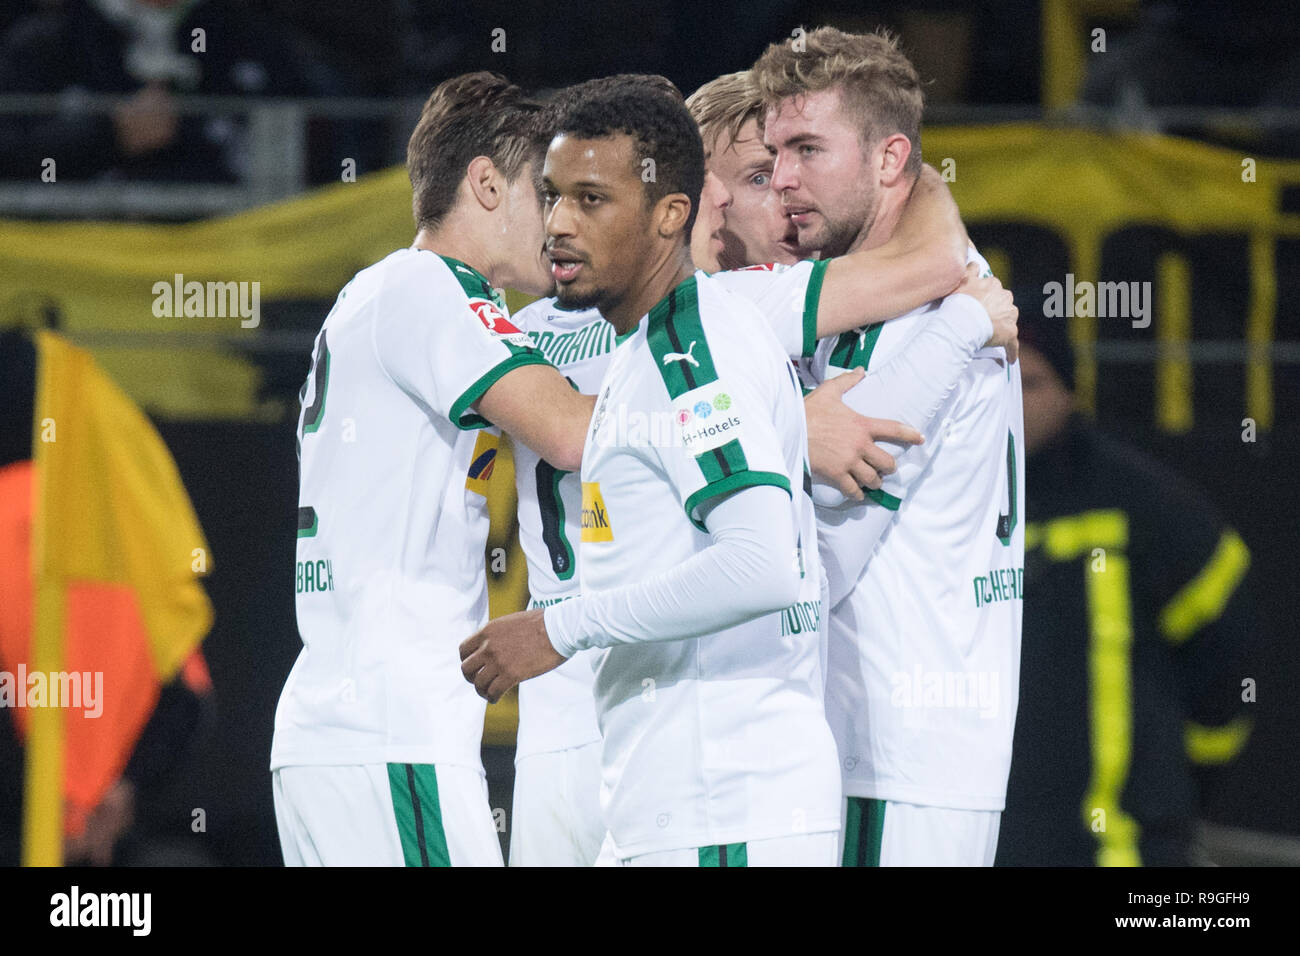 goalkeeper Christoph KRAMER (r., MG) and the Borussia Monchengladbach players cheer over the goal to make it 1-1 for Borussia Monchengladbach, jubilation, cheering, cheering, joy, cheers, celebrate, goaljubel, half figure, half figure, football 1st Bundesliga, 17. matchday, Borussia Dortmund (DO) - Borussia Monchengladbach (MG) 2: 1, on 21.12.2018 in Dortmund/Germany. ¬ © Sven Simon Photo Agency GmbH & Co. Press Photo KG # Prinzess-Luise-Str. 41 # 45479 M uelheim/Ruhr # Tel. 0208/9413250 # Fax. 0208/9413260 # GLS Bank # Bank Code 430 609 67 # Kto. 4030 025 100 # IBAN DE75 4306 0967 4030 0 - Stock Image